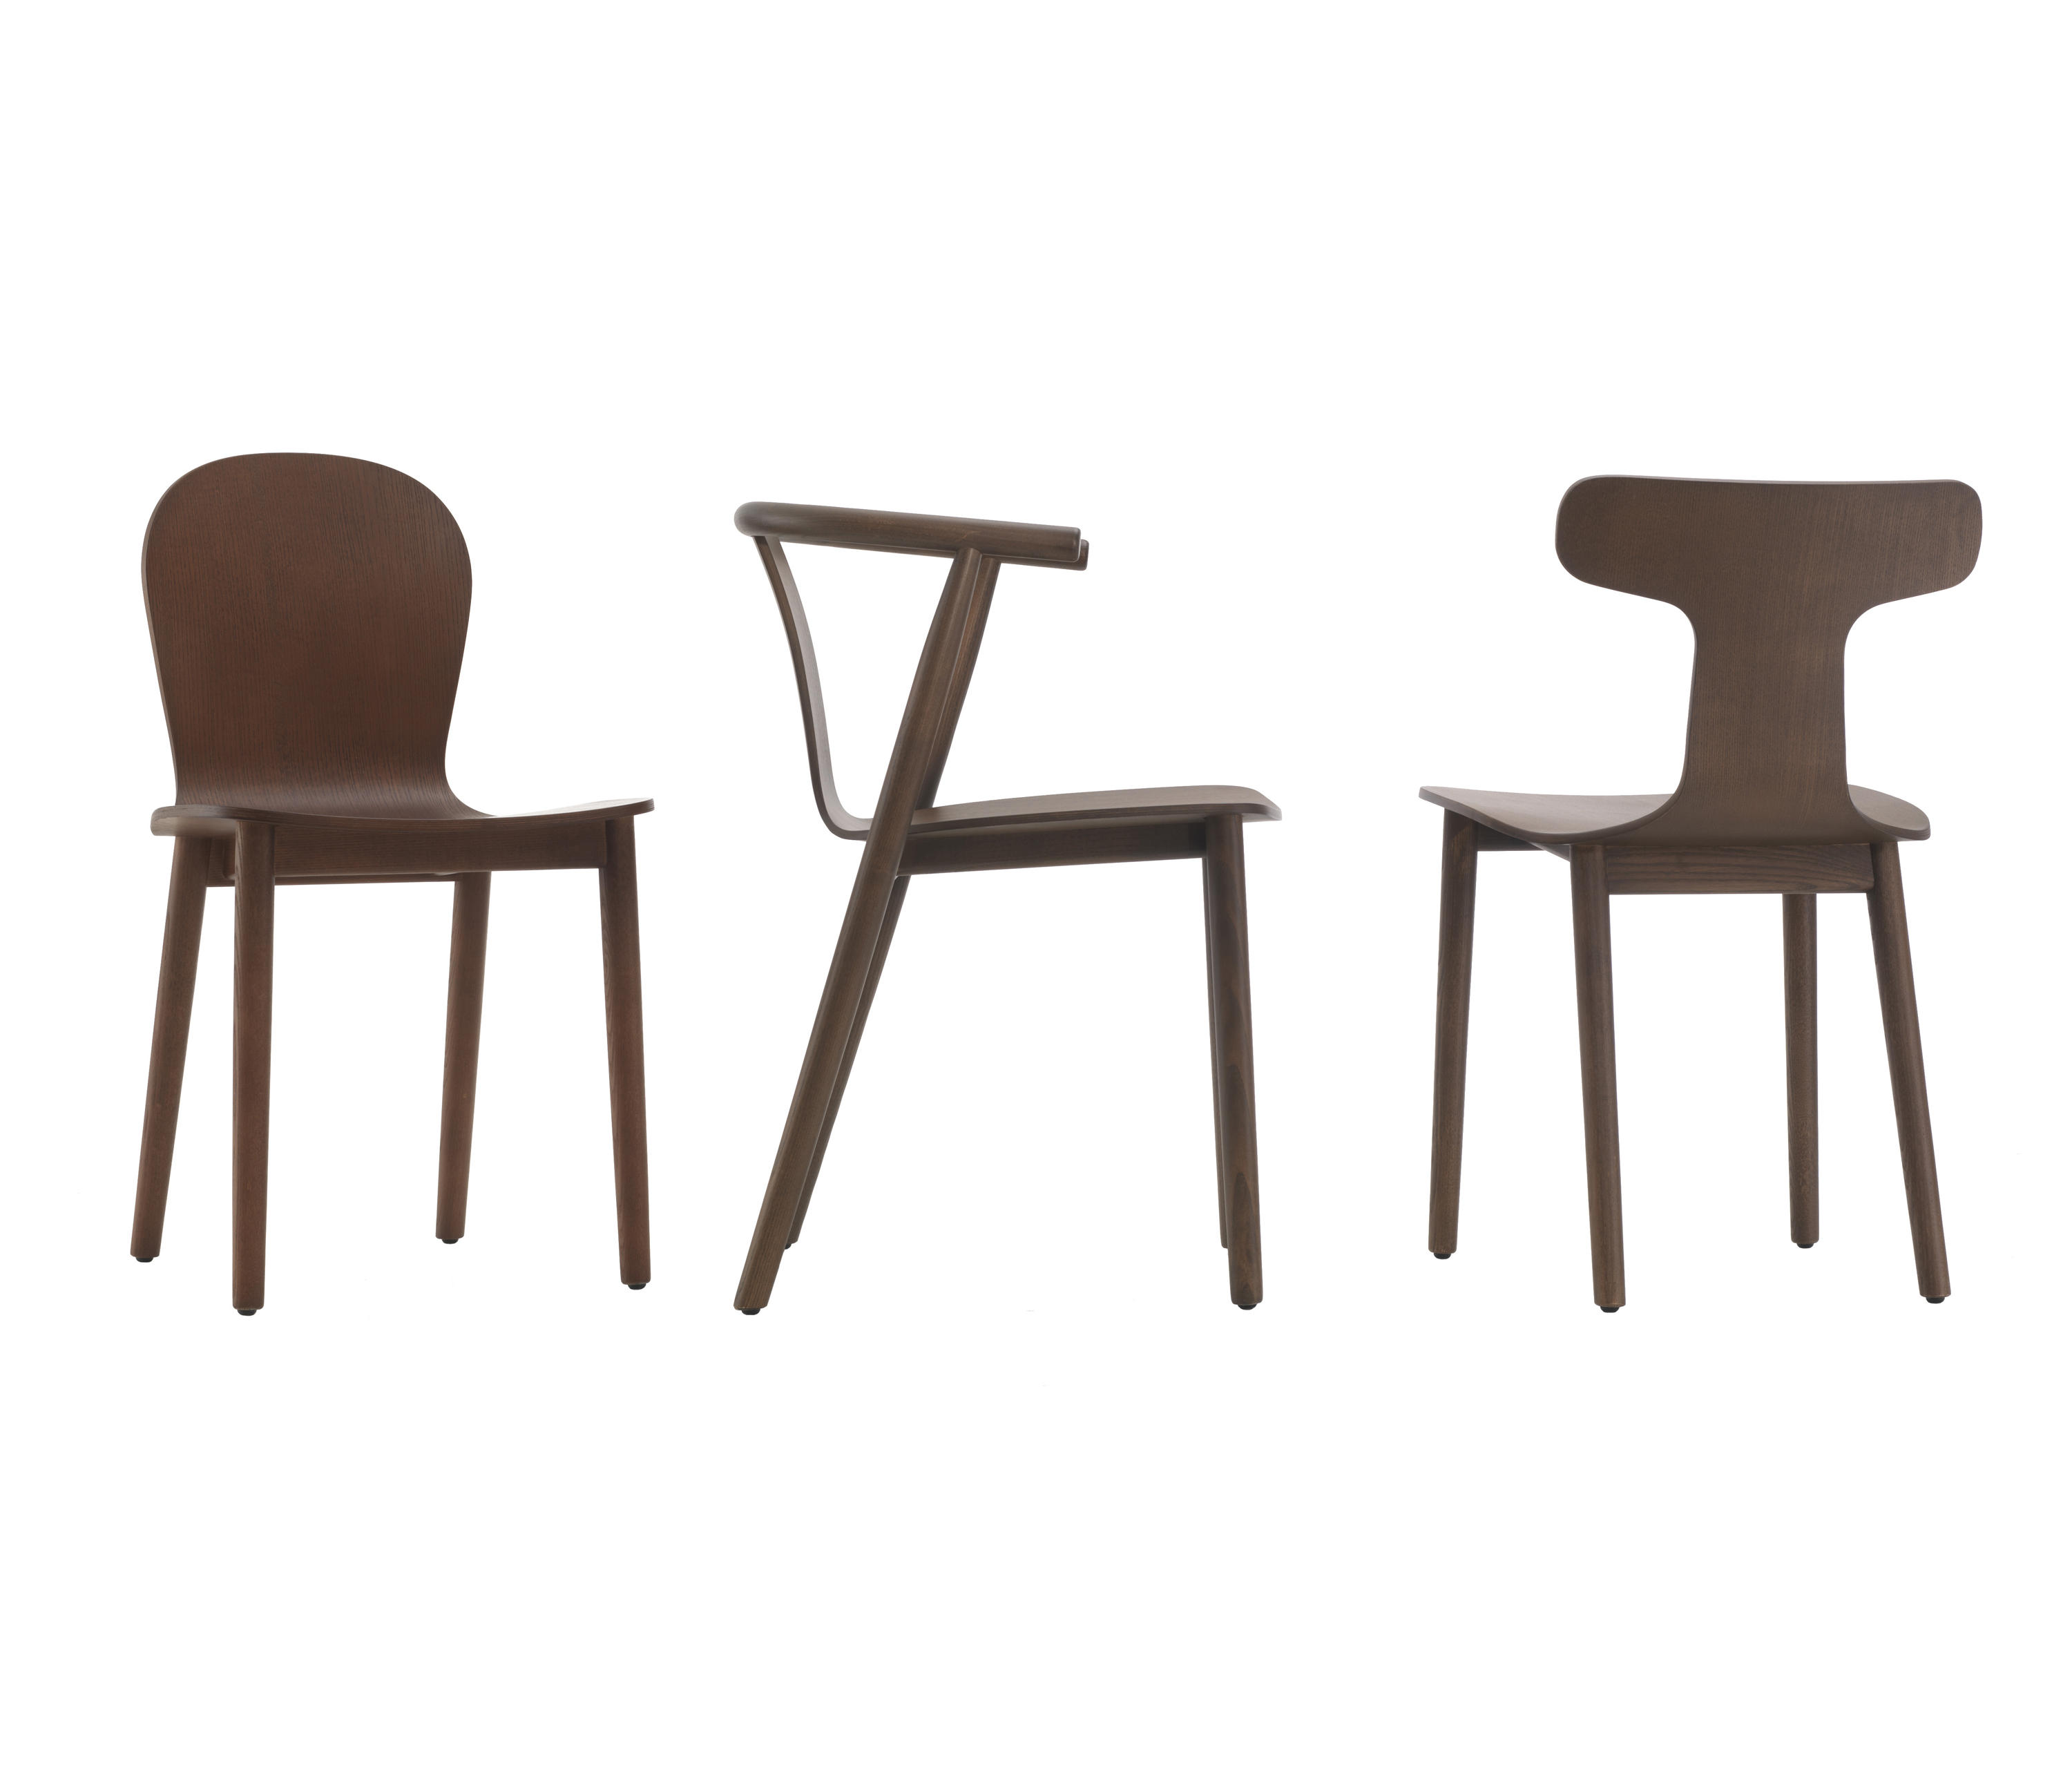 bac  restaurant chairs from cappellini  architonic -  cappellini bac by cappellini